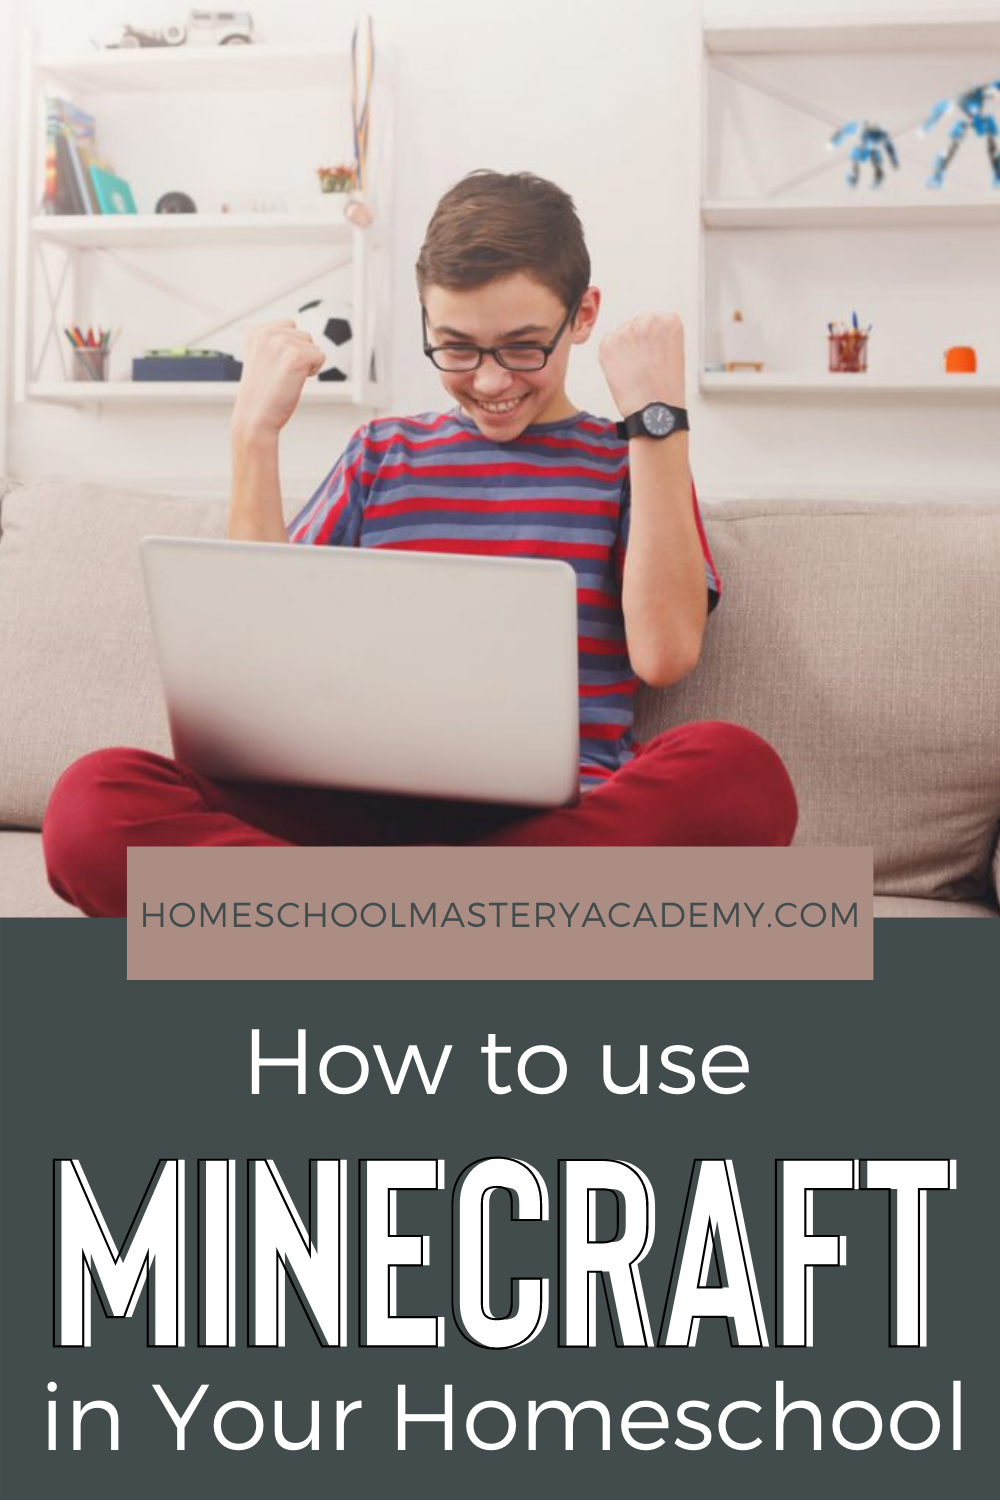 How to Use Minecraft in Your Homeschool Make It Educational